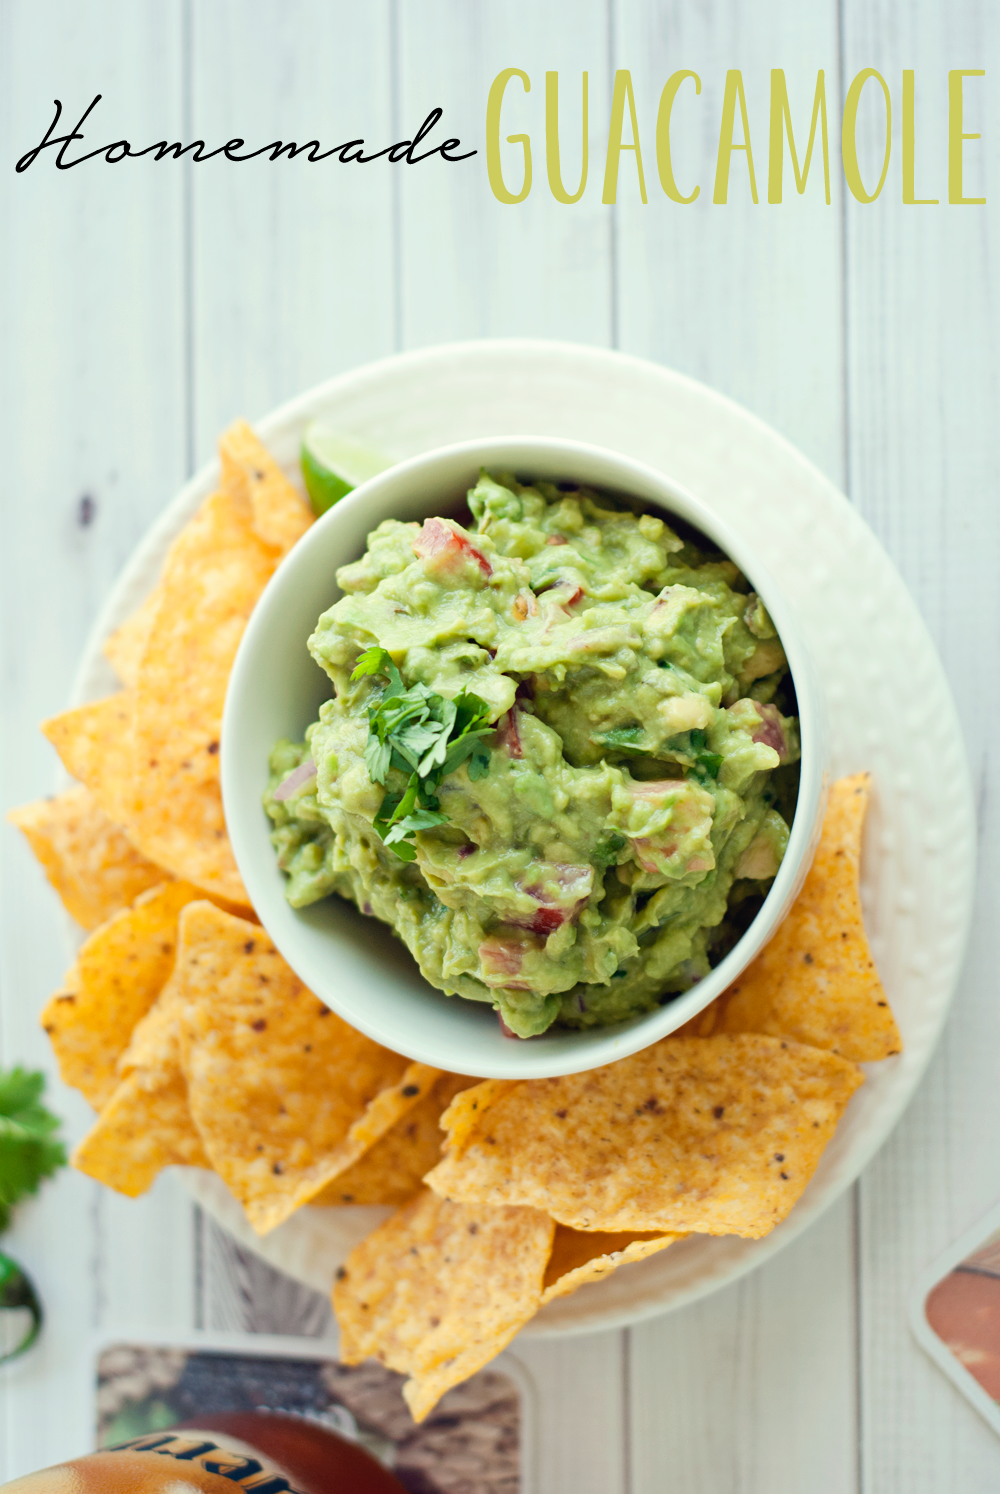 Homemade Guacamole by Three in Three #recipe #CuervoTeagarita